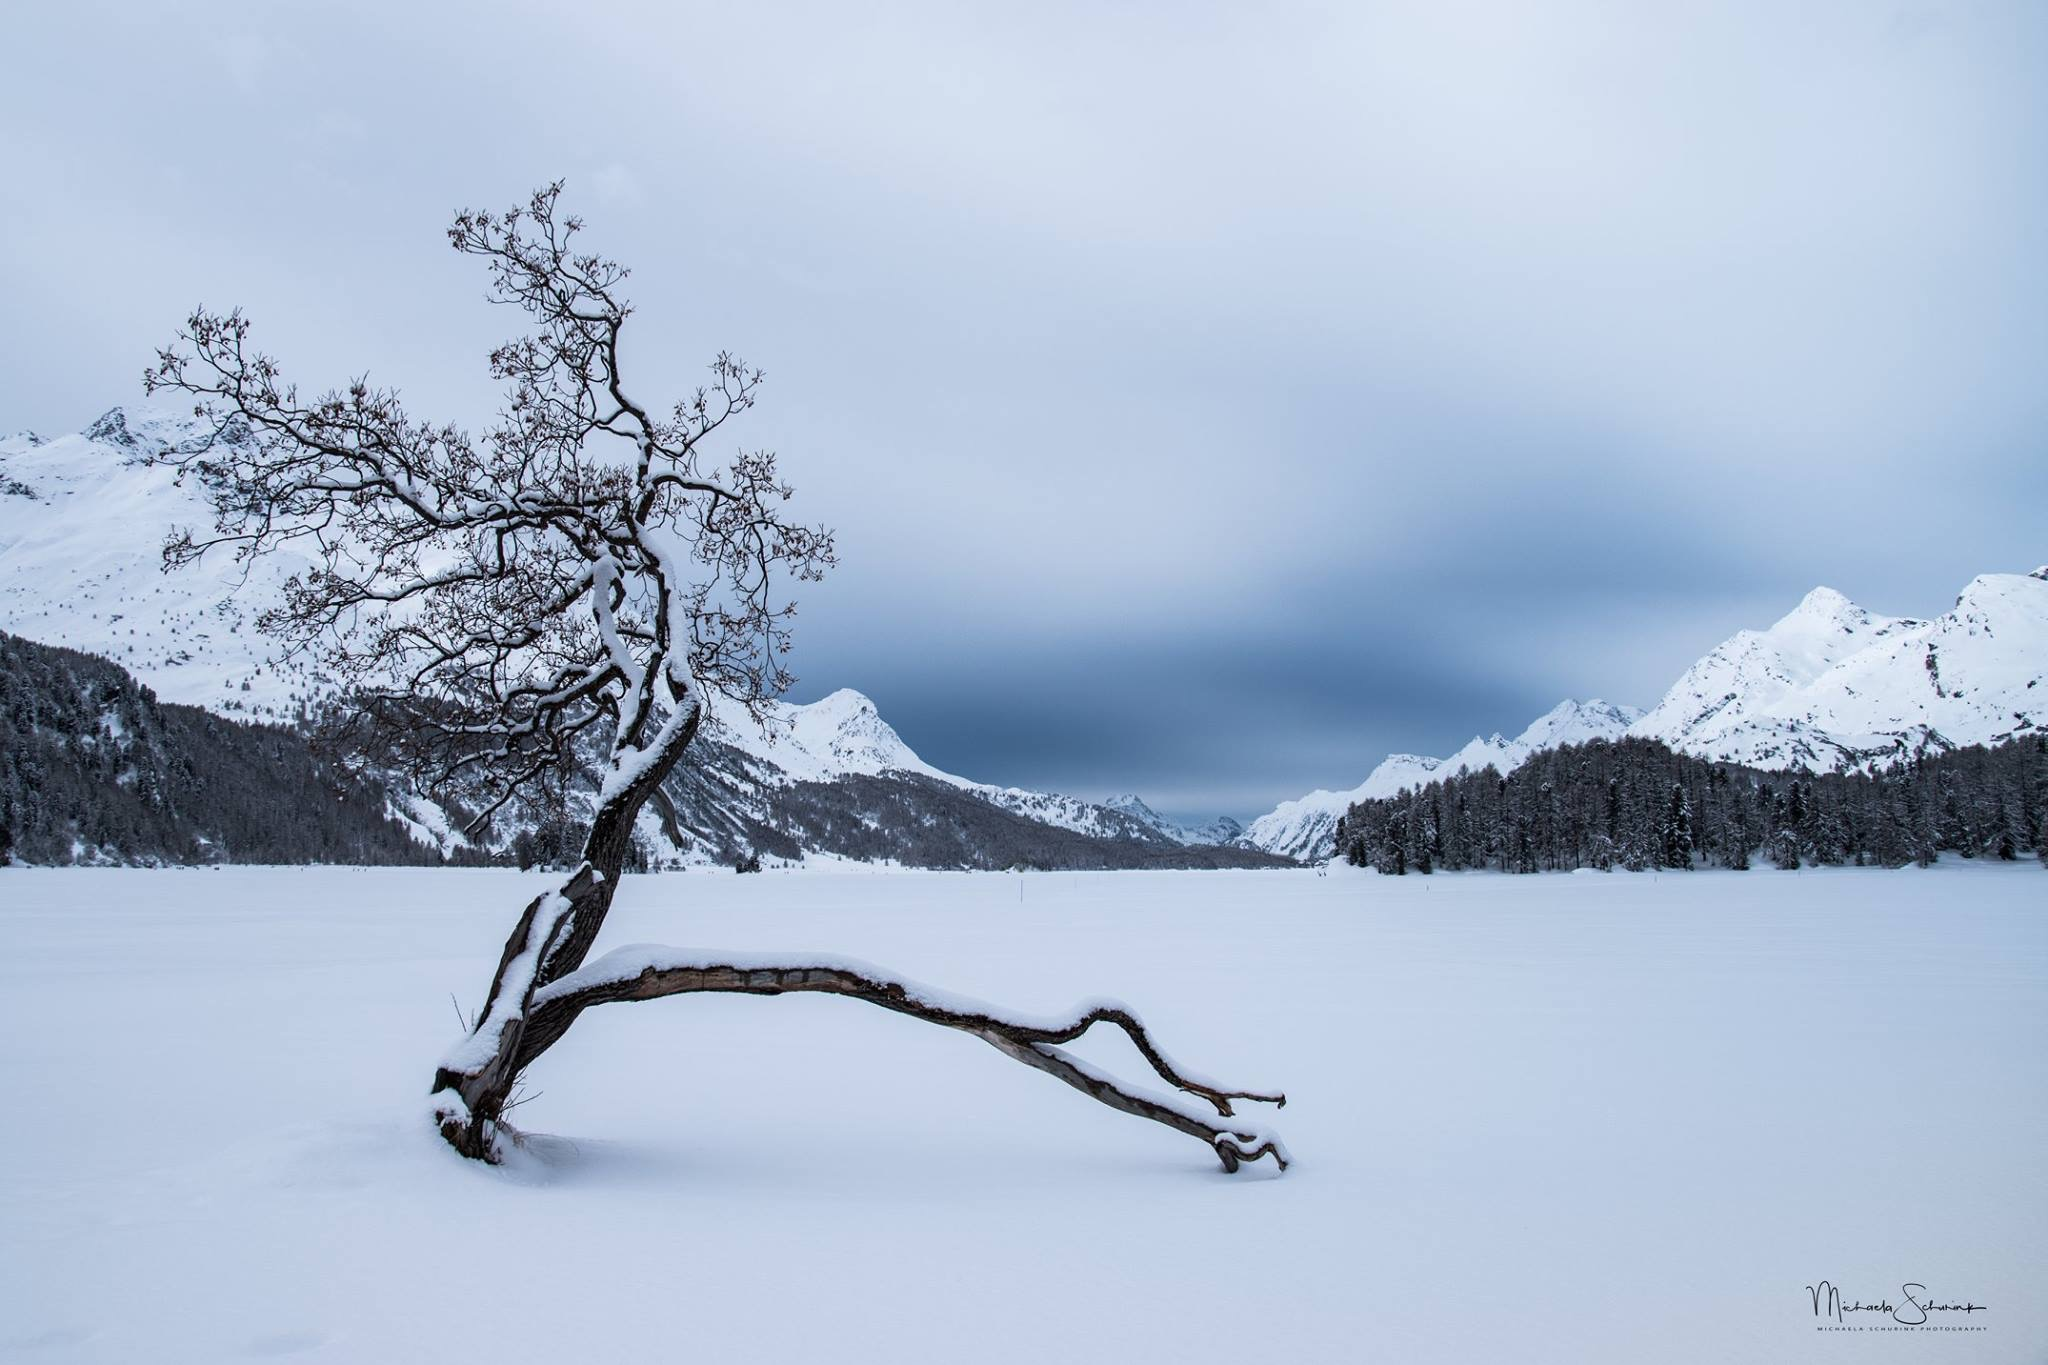 Magic tree at Silsersee, Sils Maria, Switzerland